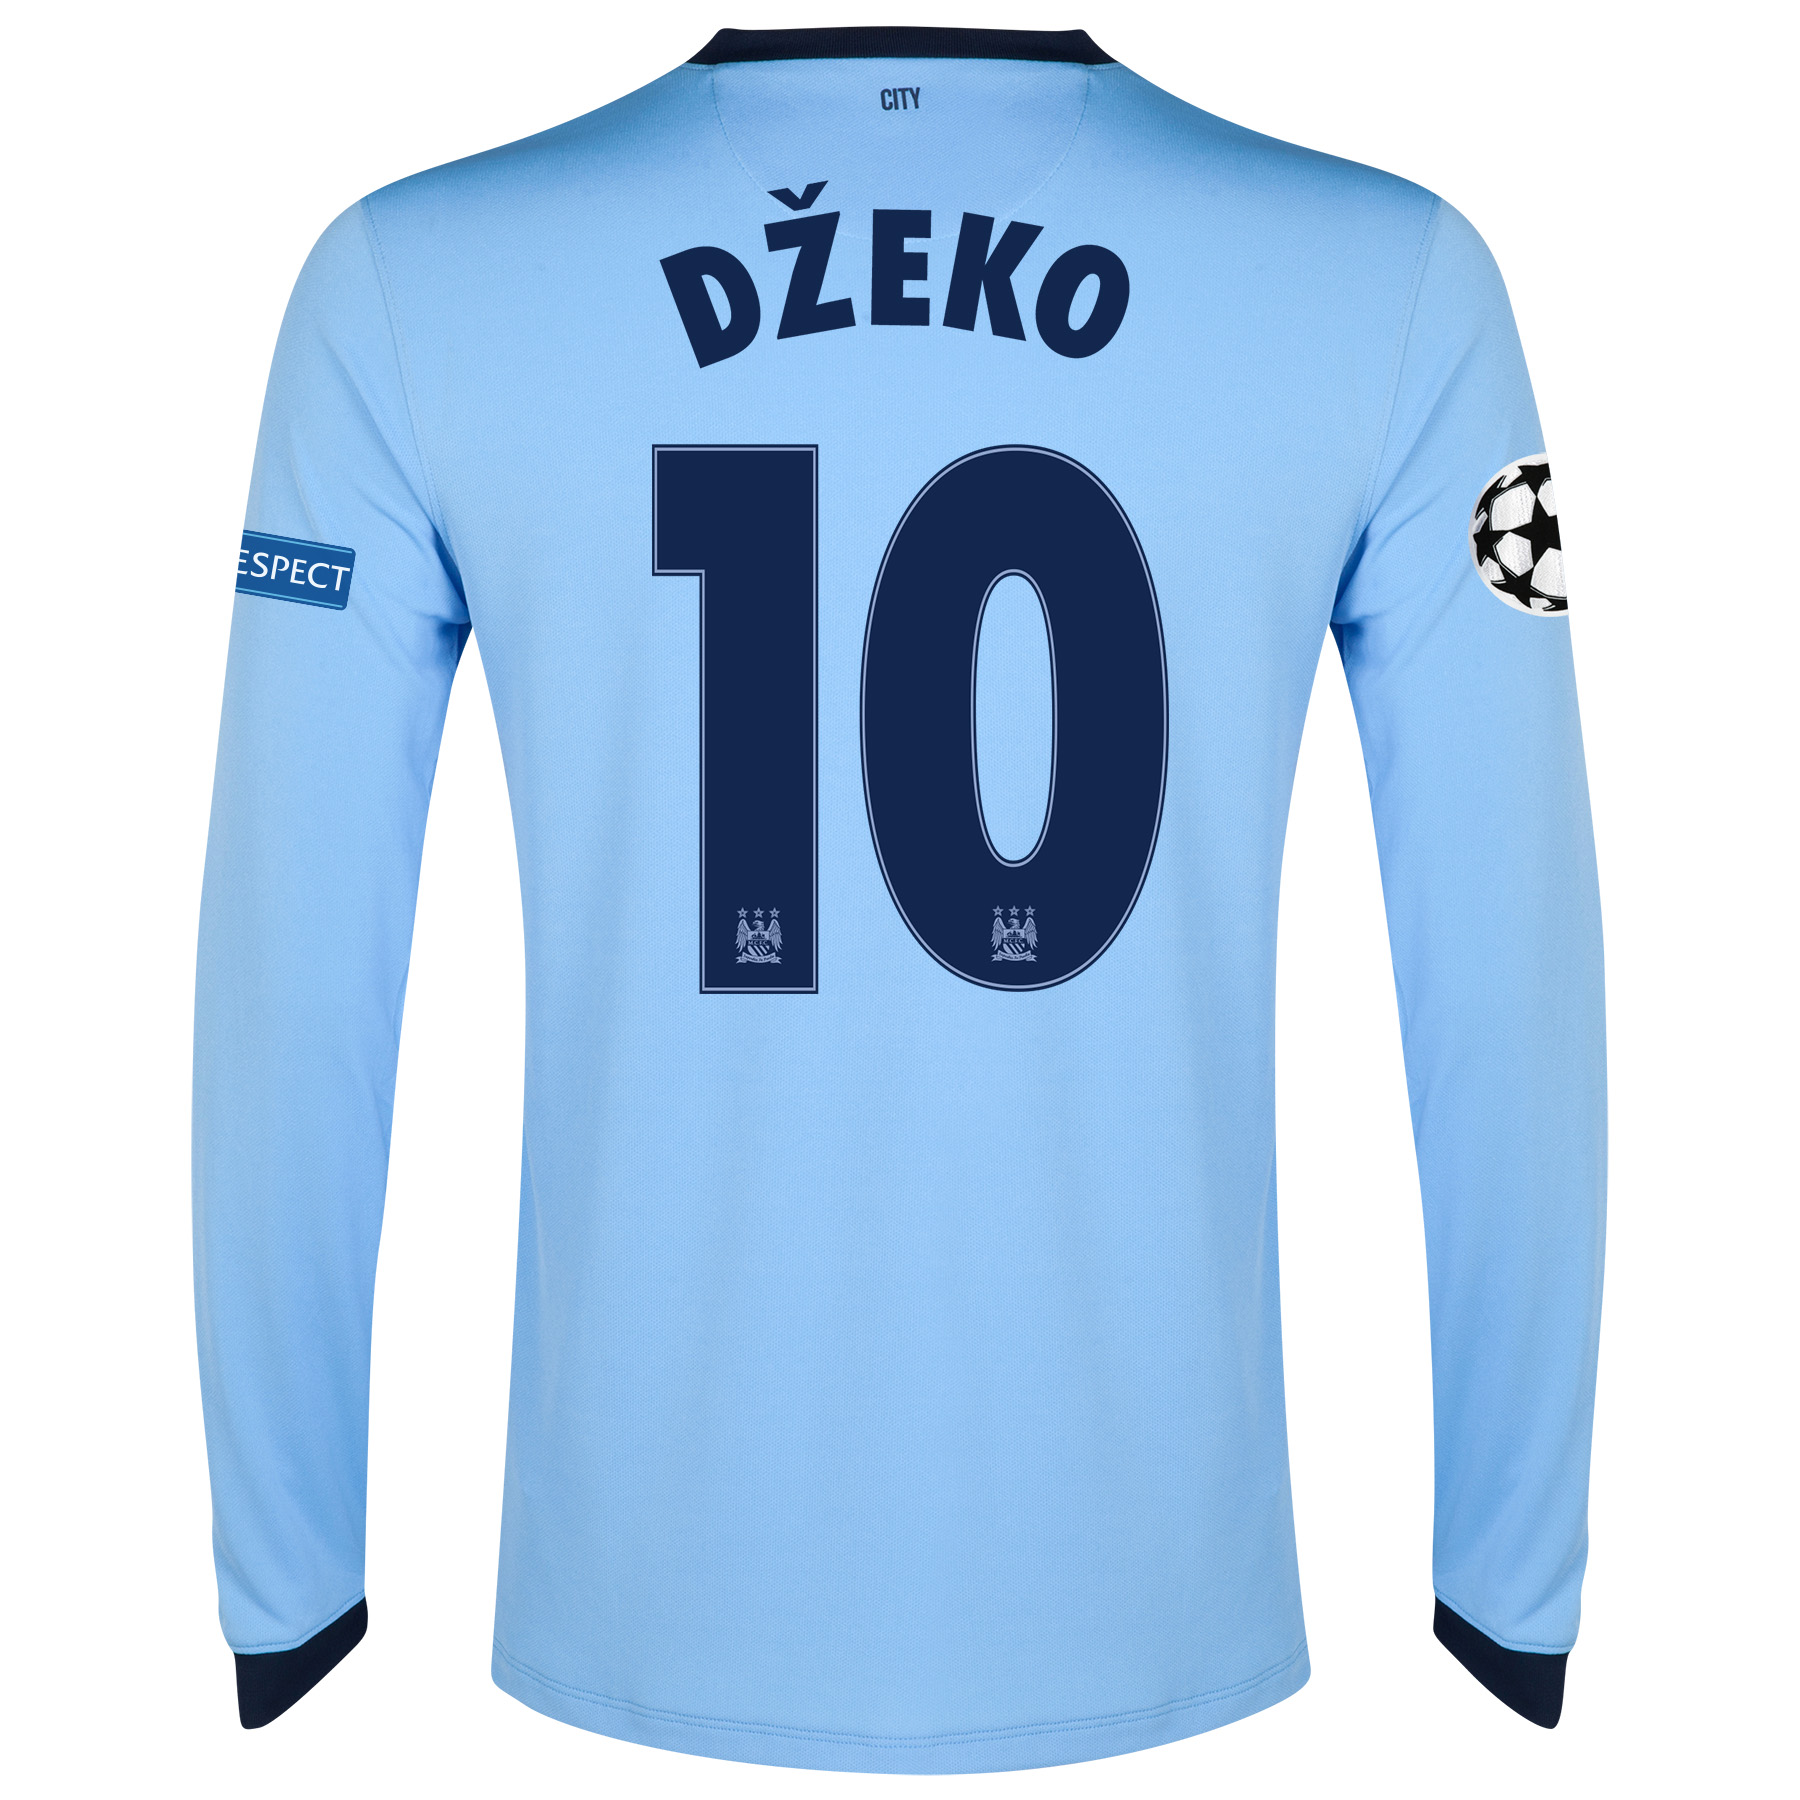 Manchester City UEFA Champions League Home Shirt 2014/15 - Long Sleeve Sky Blue with Dzeko 10 printing